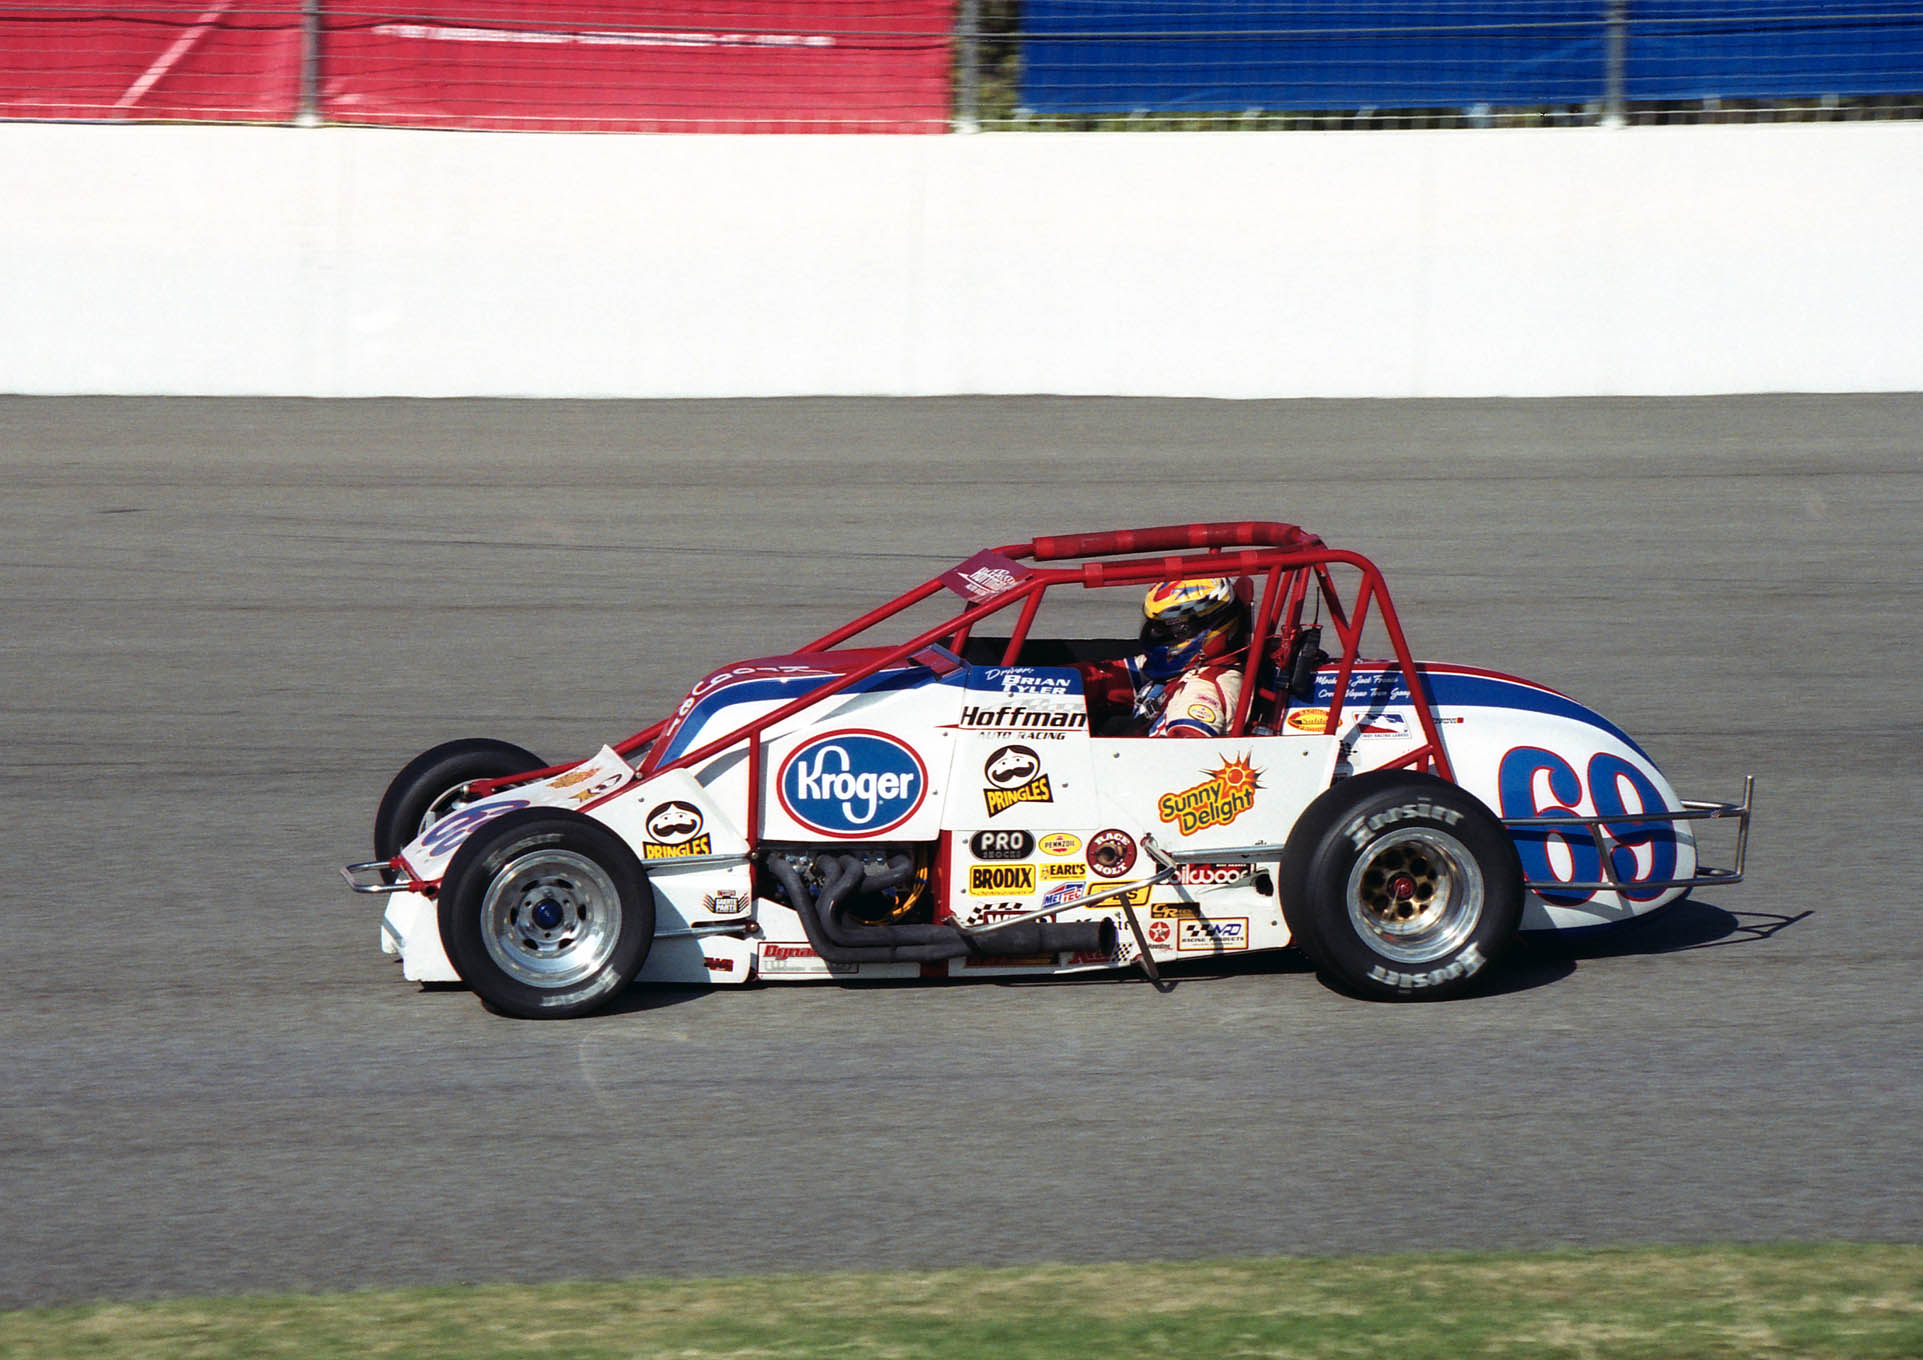 Brian Tyler won four USAC Silver Crown races for the Hoffman team.